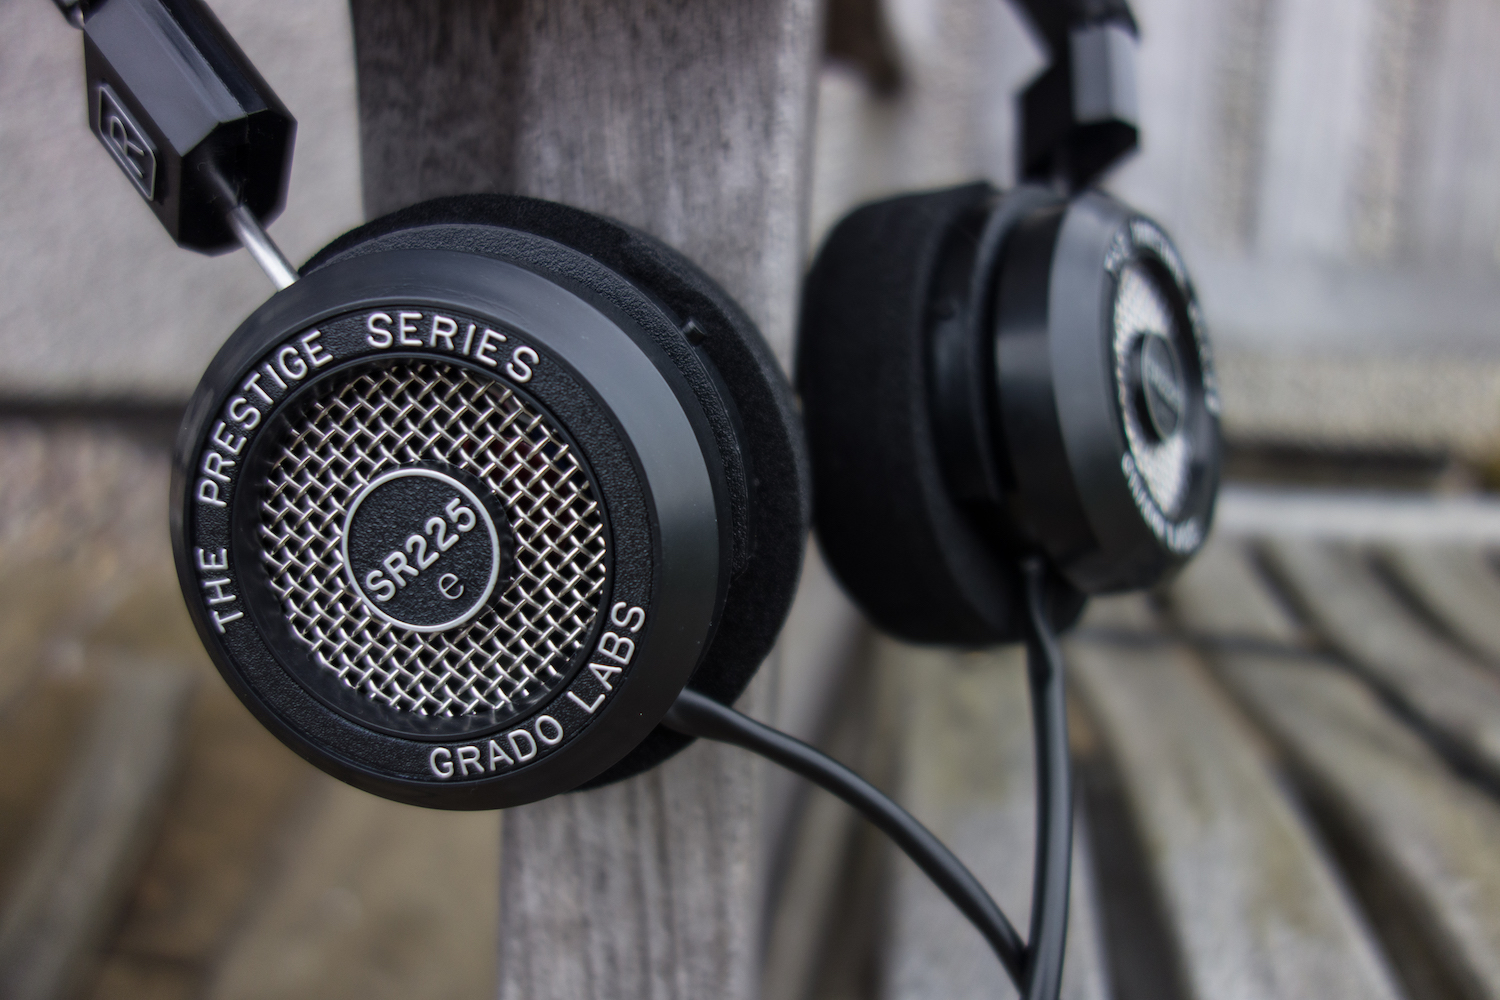 One of the most classical designs in audiophile headphones - The Grado e Series SR225e